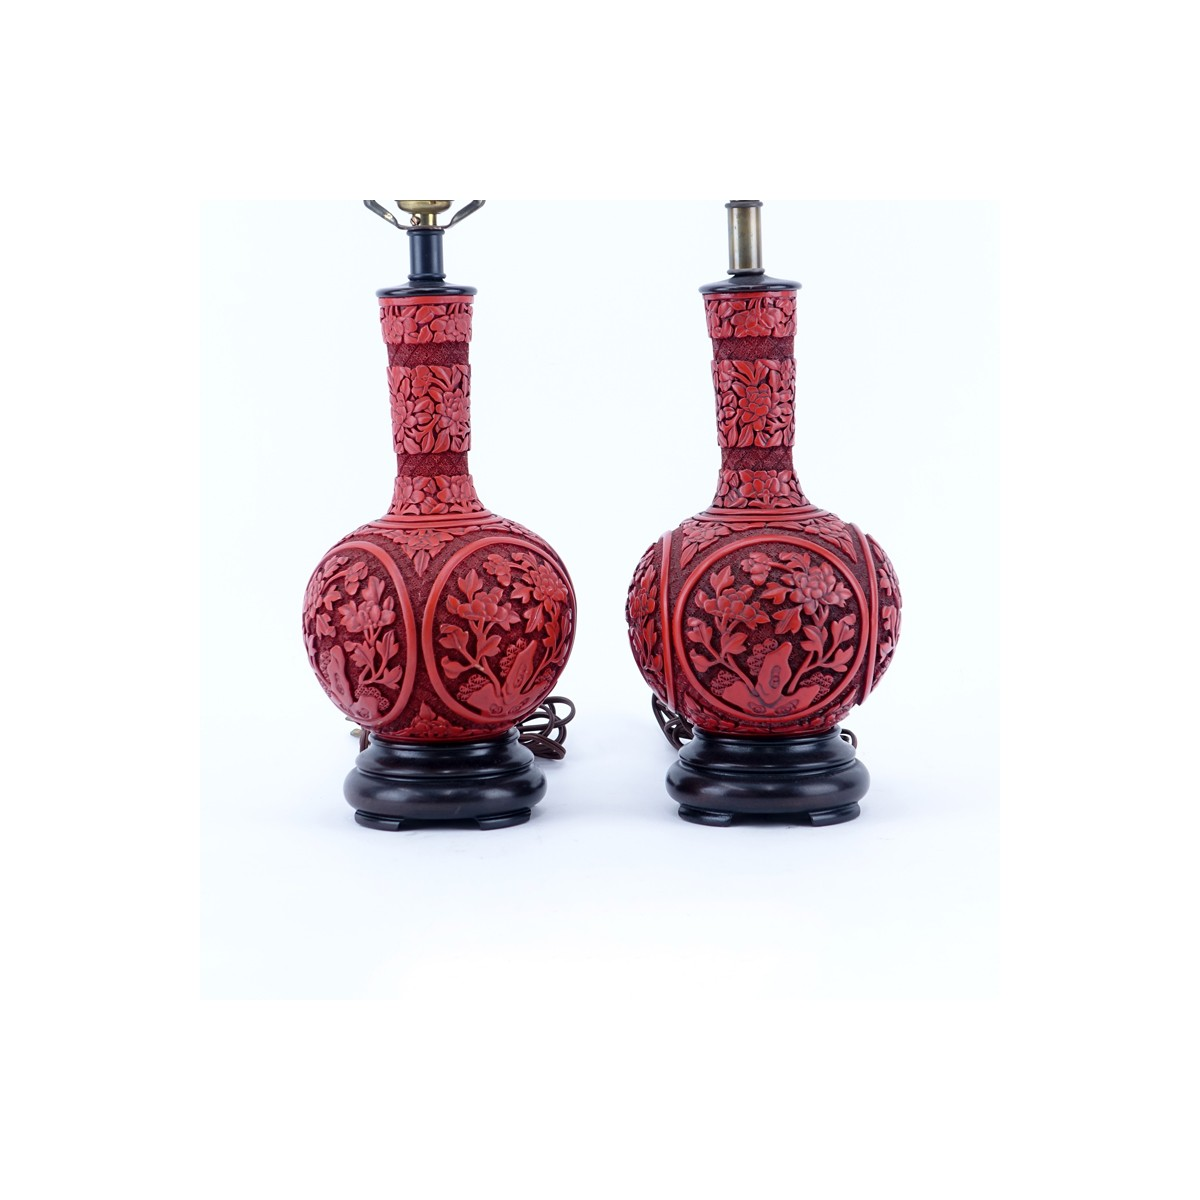 "Pair of Chinese Cinnabar Style Vases Mounted as Lamps. Good condition. Overall measures 21-1/2"" H,"